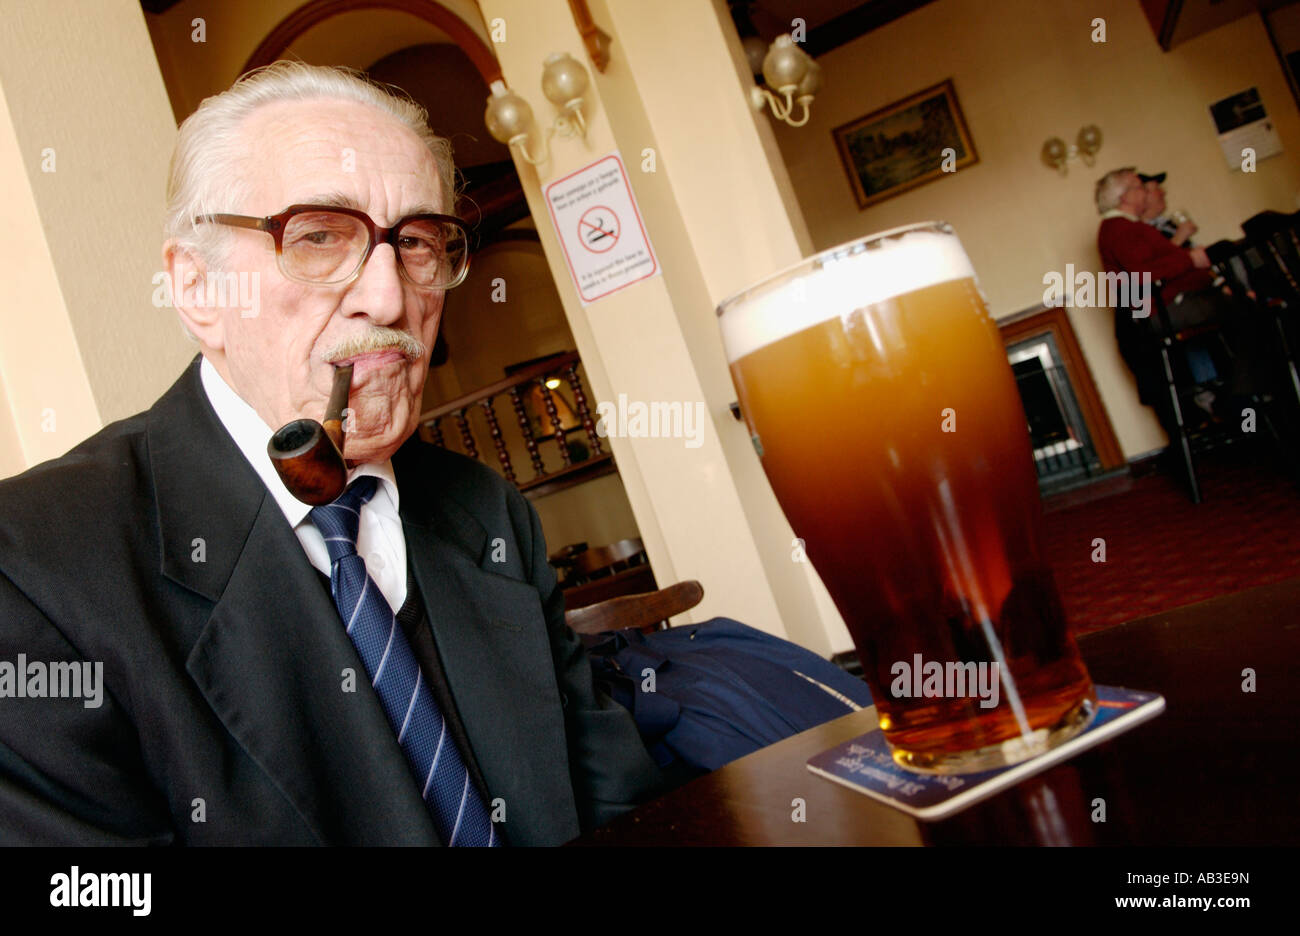 Elderly man sucking on his unlit pipe because of No Smoking in pub Crumlin South Wales UK - Stock Image